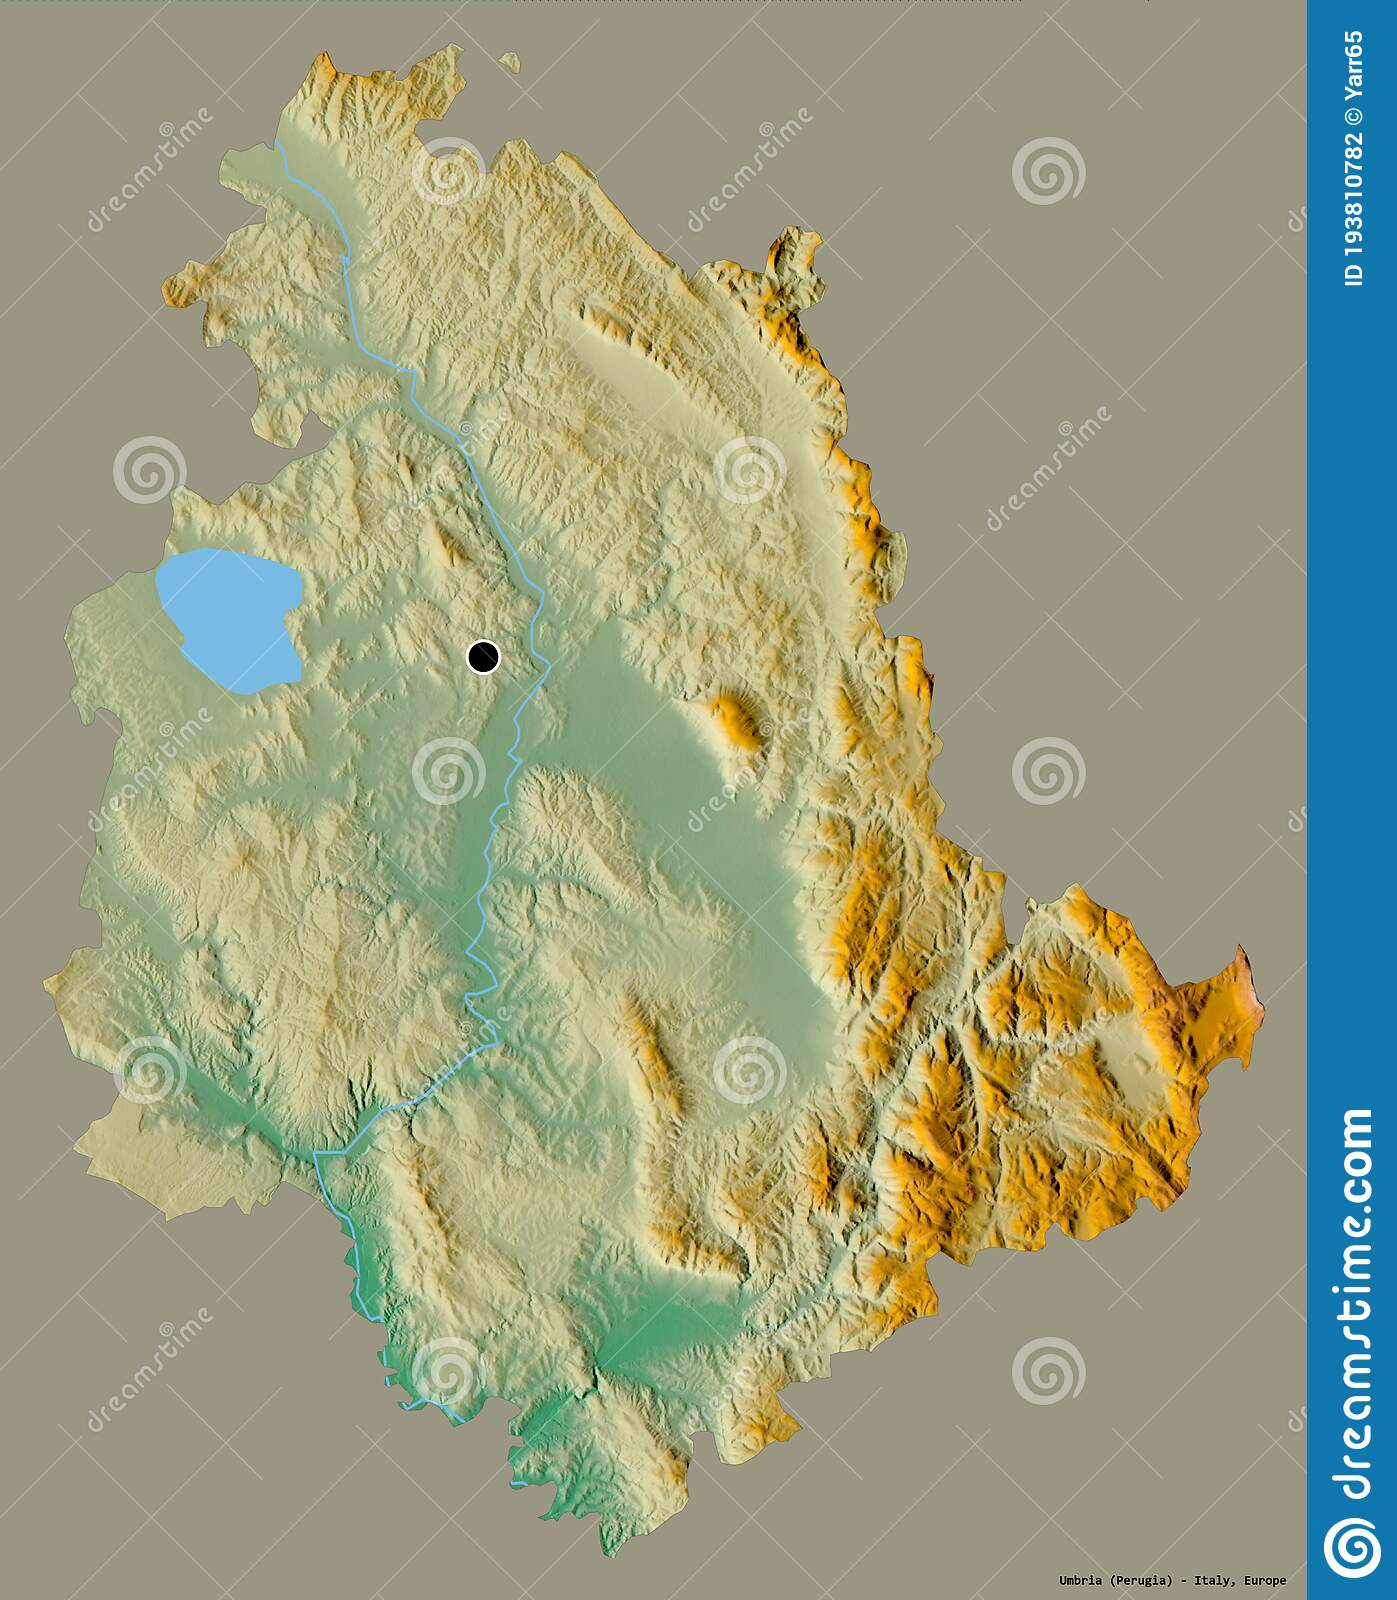 umbria region italy solid relief shape its capital isolated color background topographic map d rendering